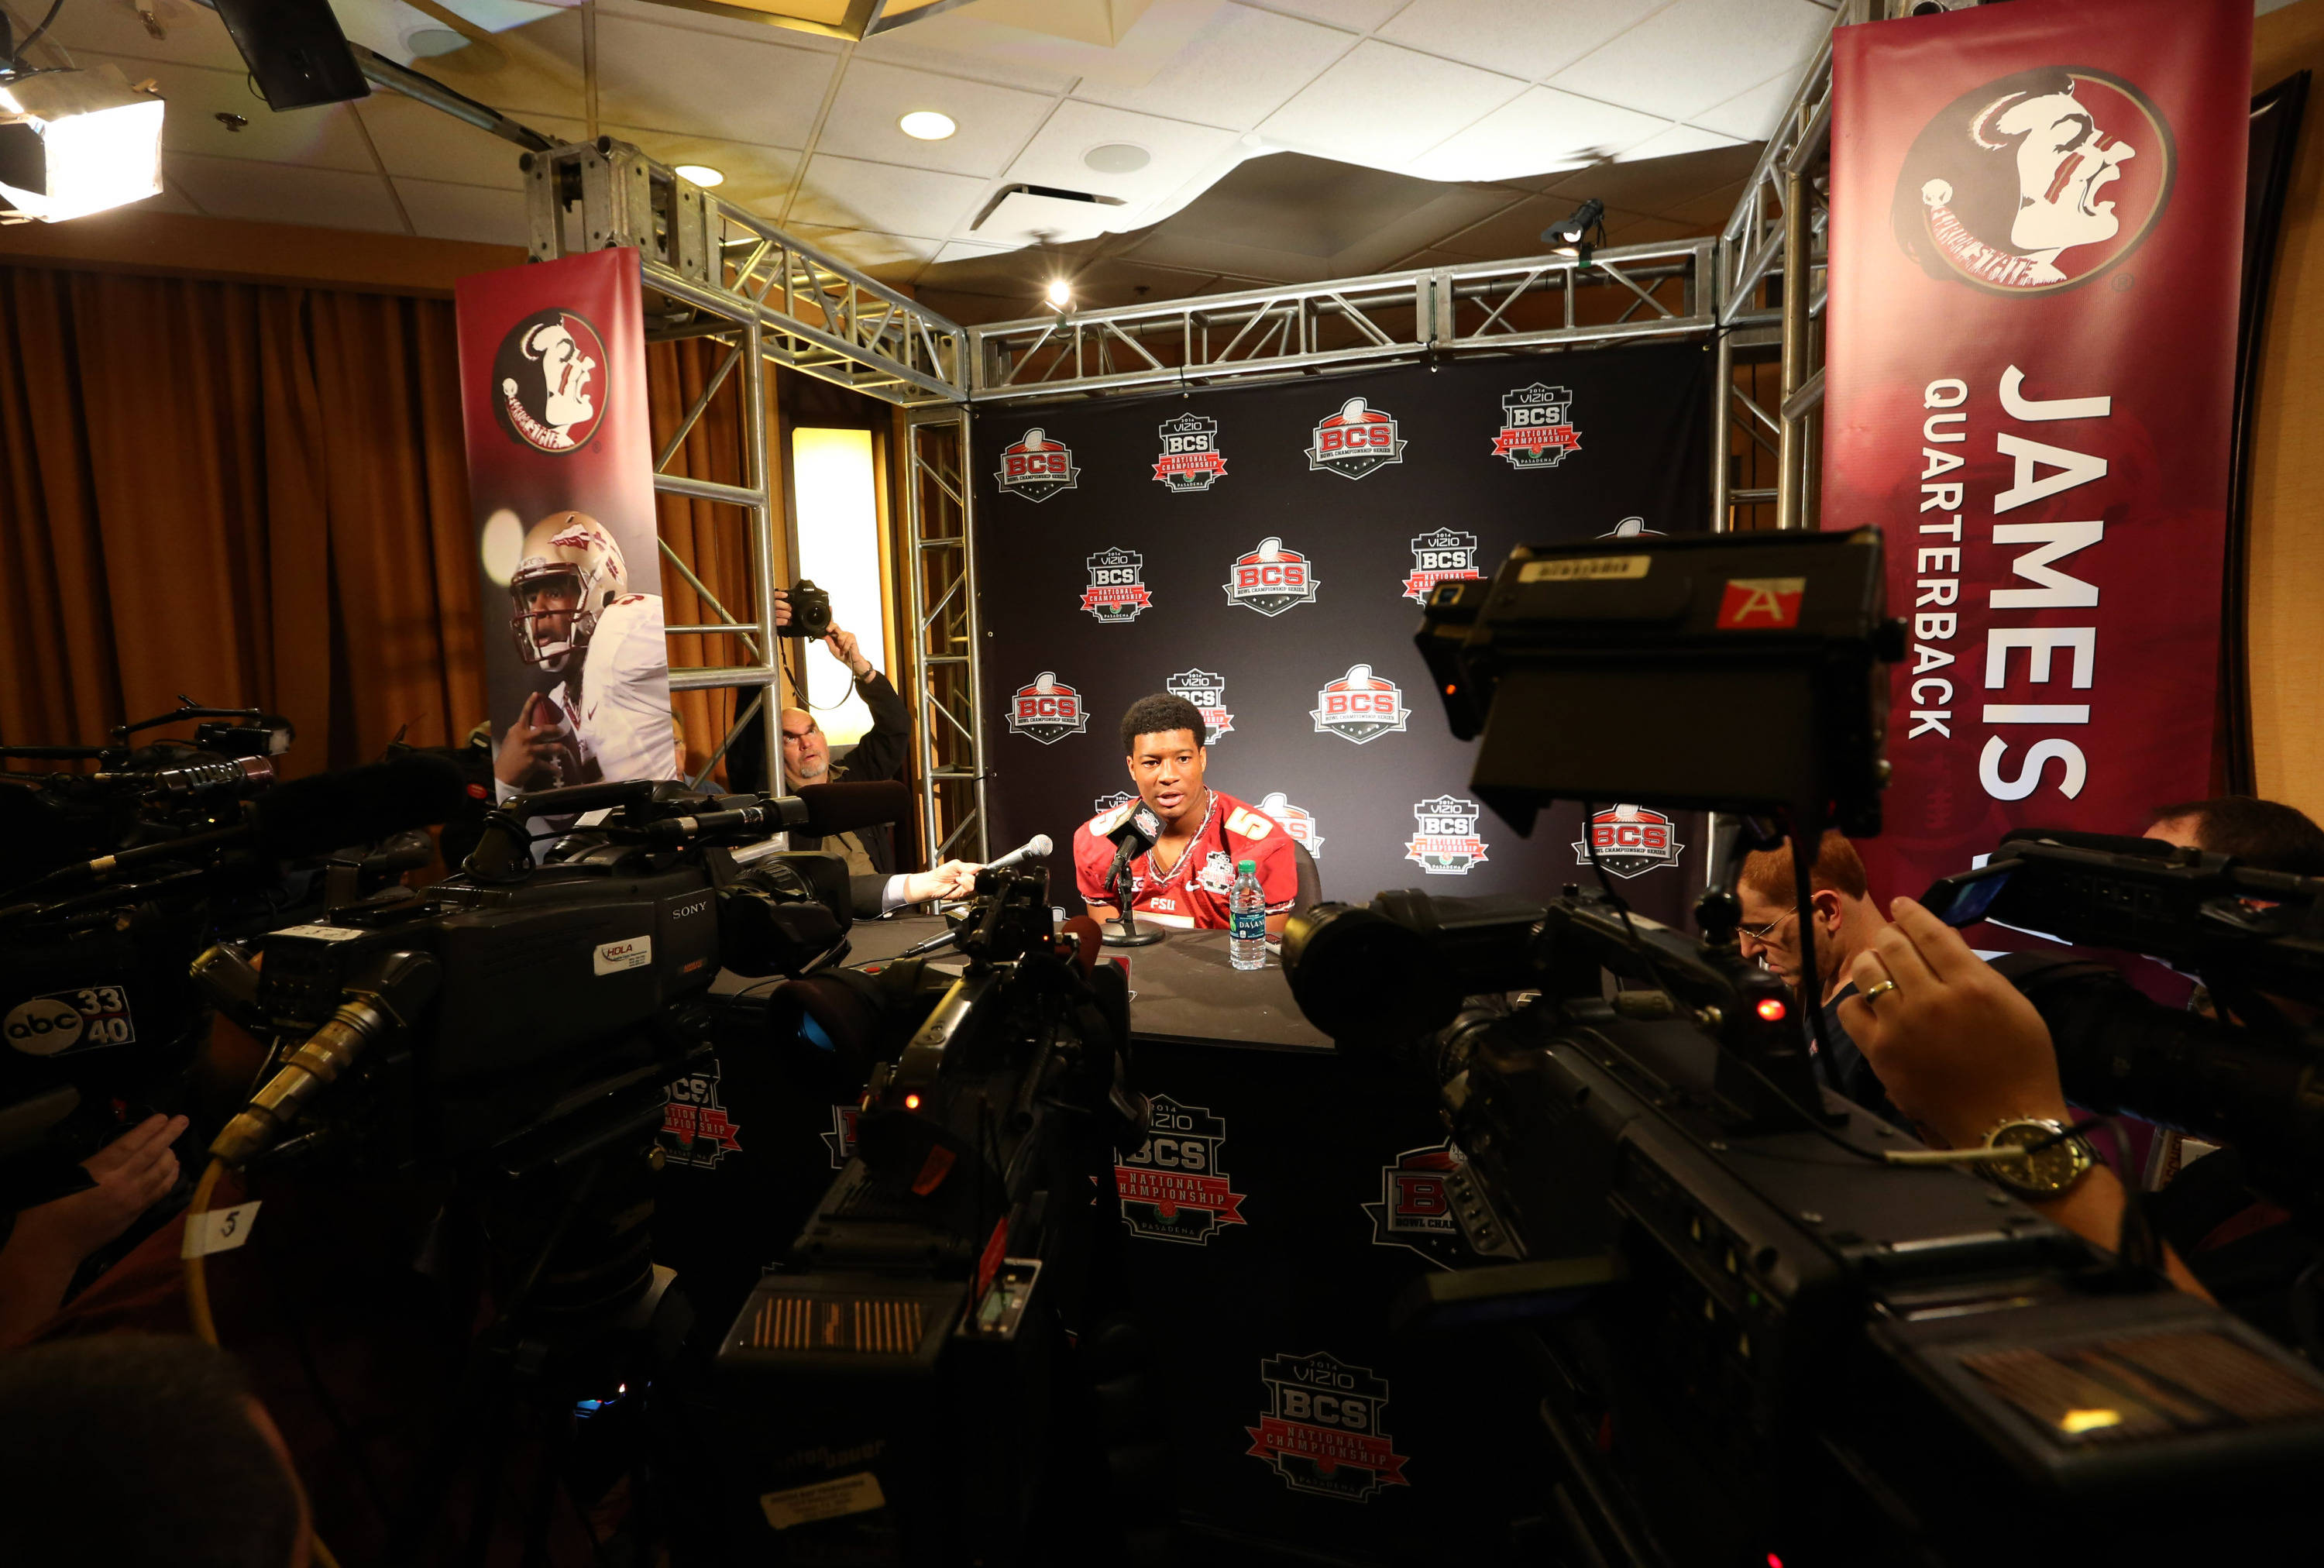 Jan 4, 2014; Newport Beach, CA, USA; Seminoles quarterback Jameis Winston (5) smiles as he answers questions during Media Day at Newport Beach Marriott. Matthew Emmons-USA TODAY Sports